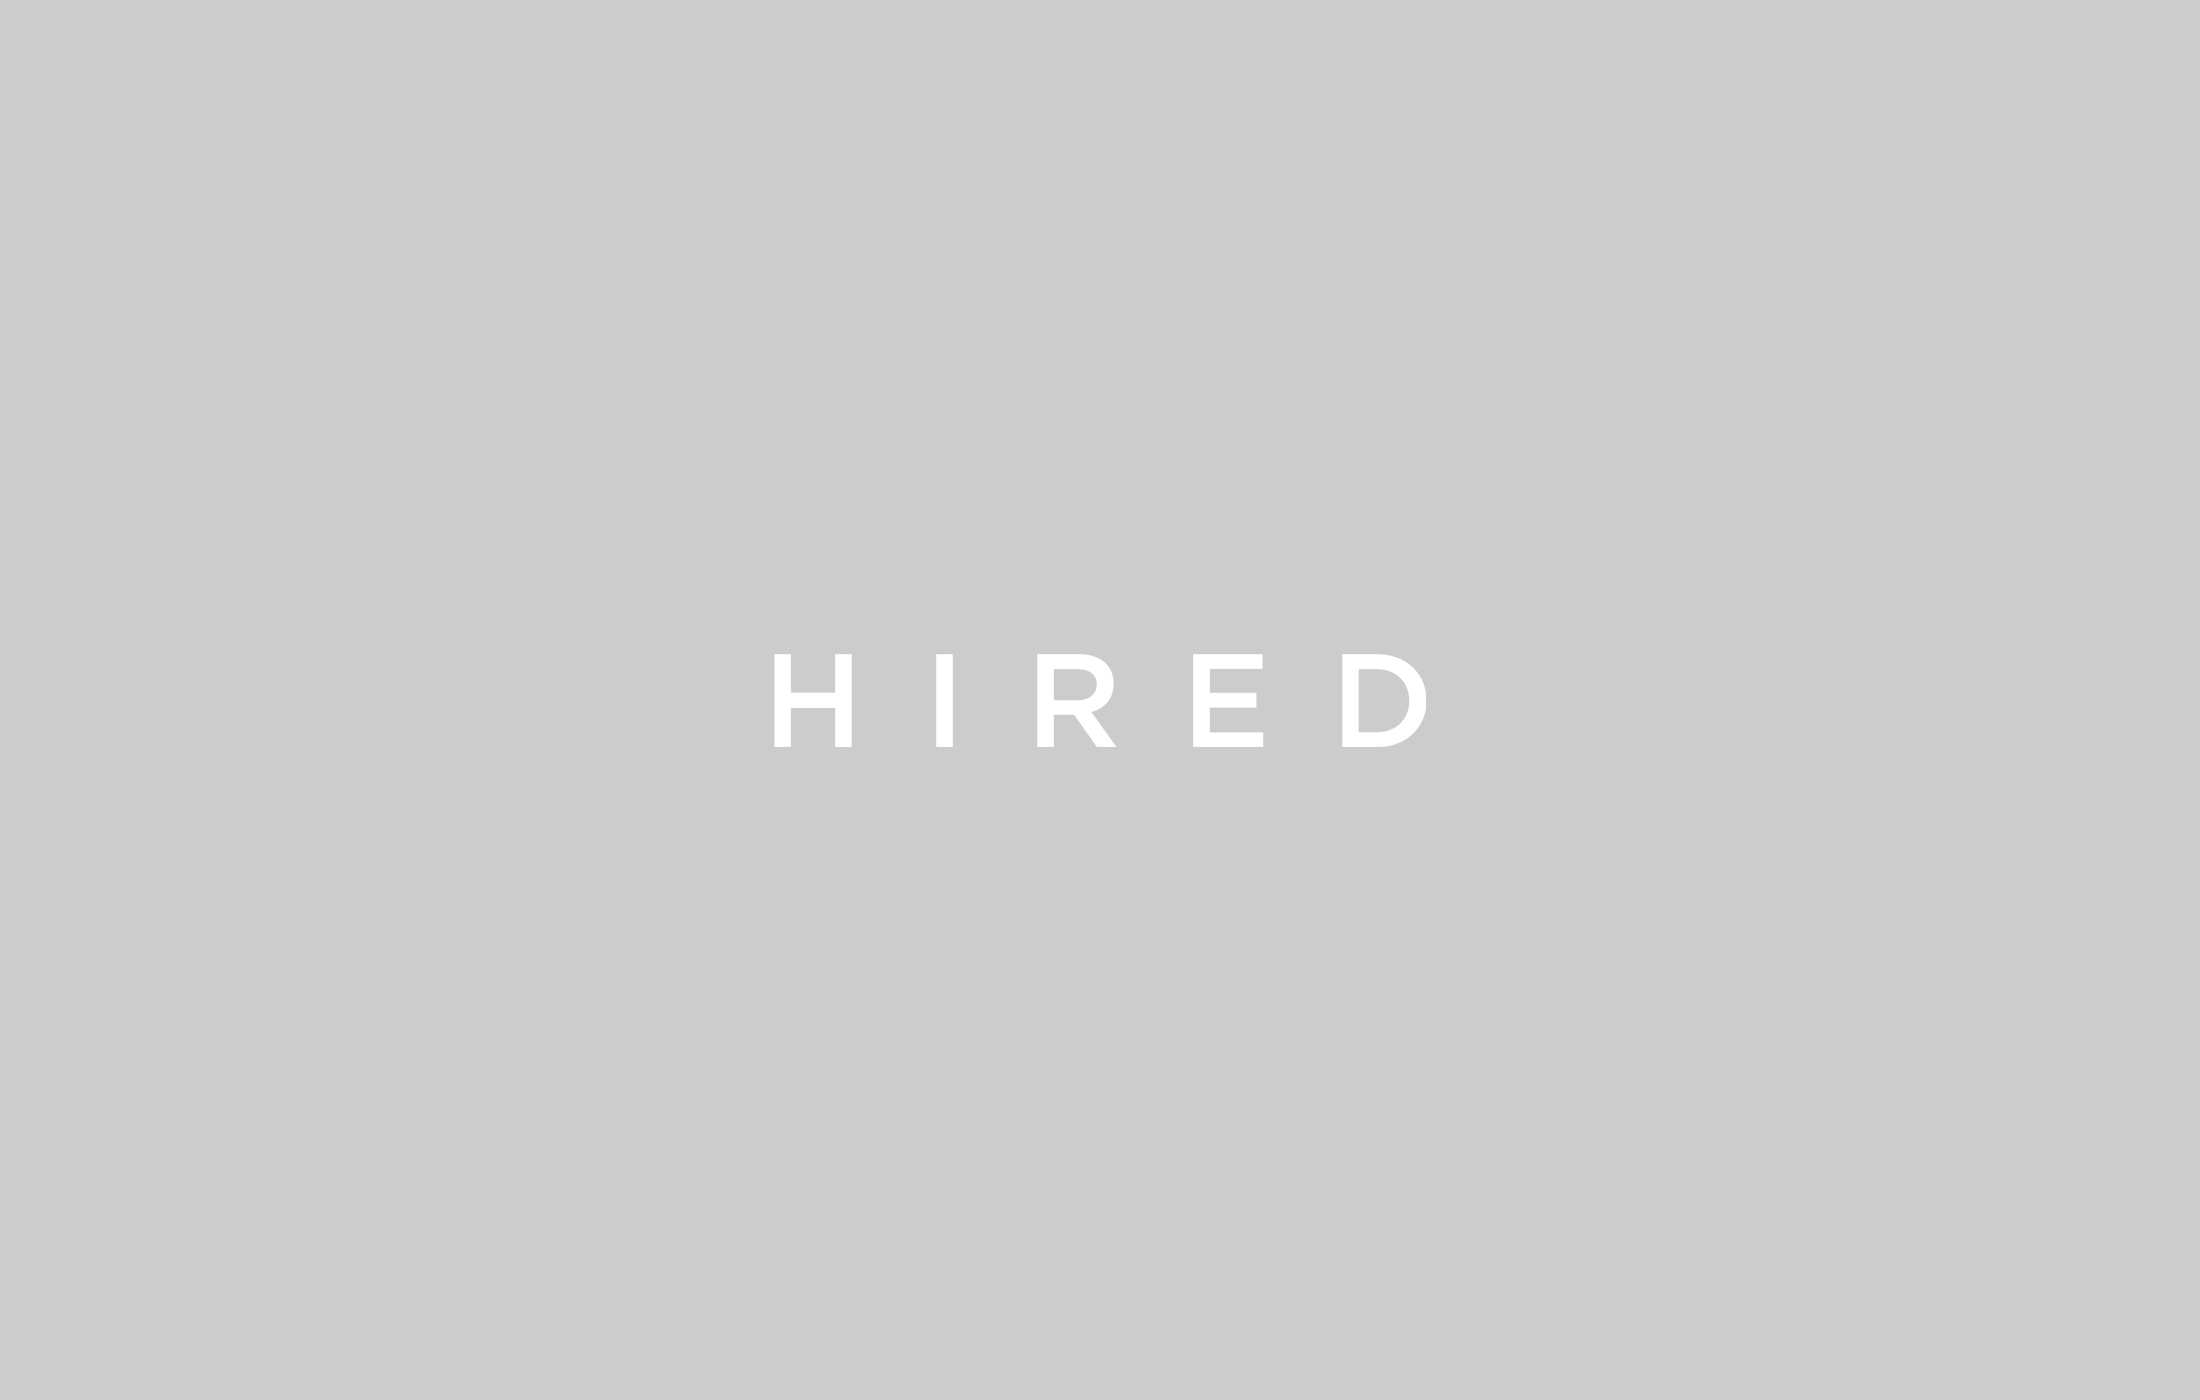 hired-london-is-officially-open-for-business